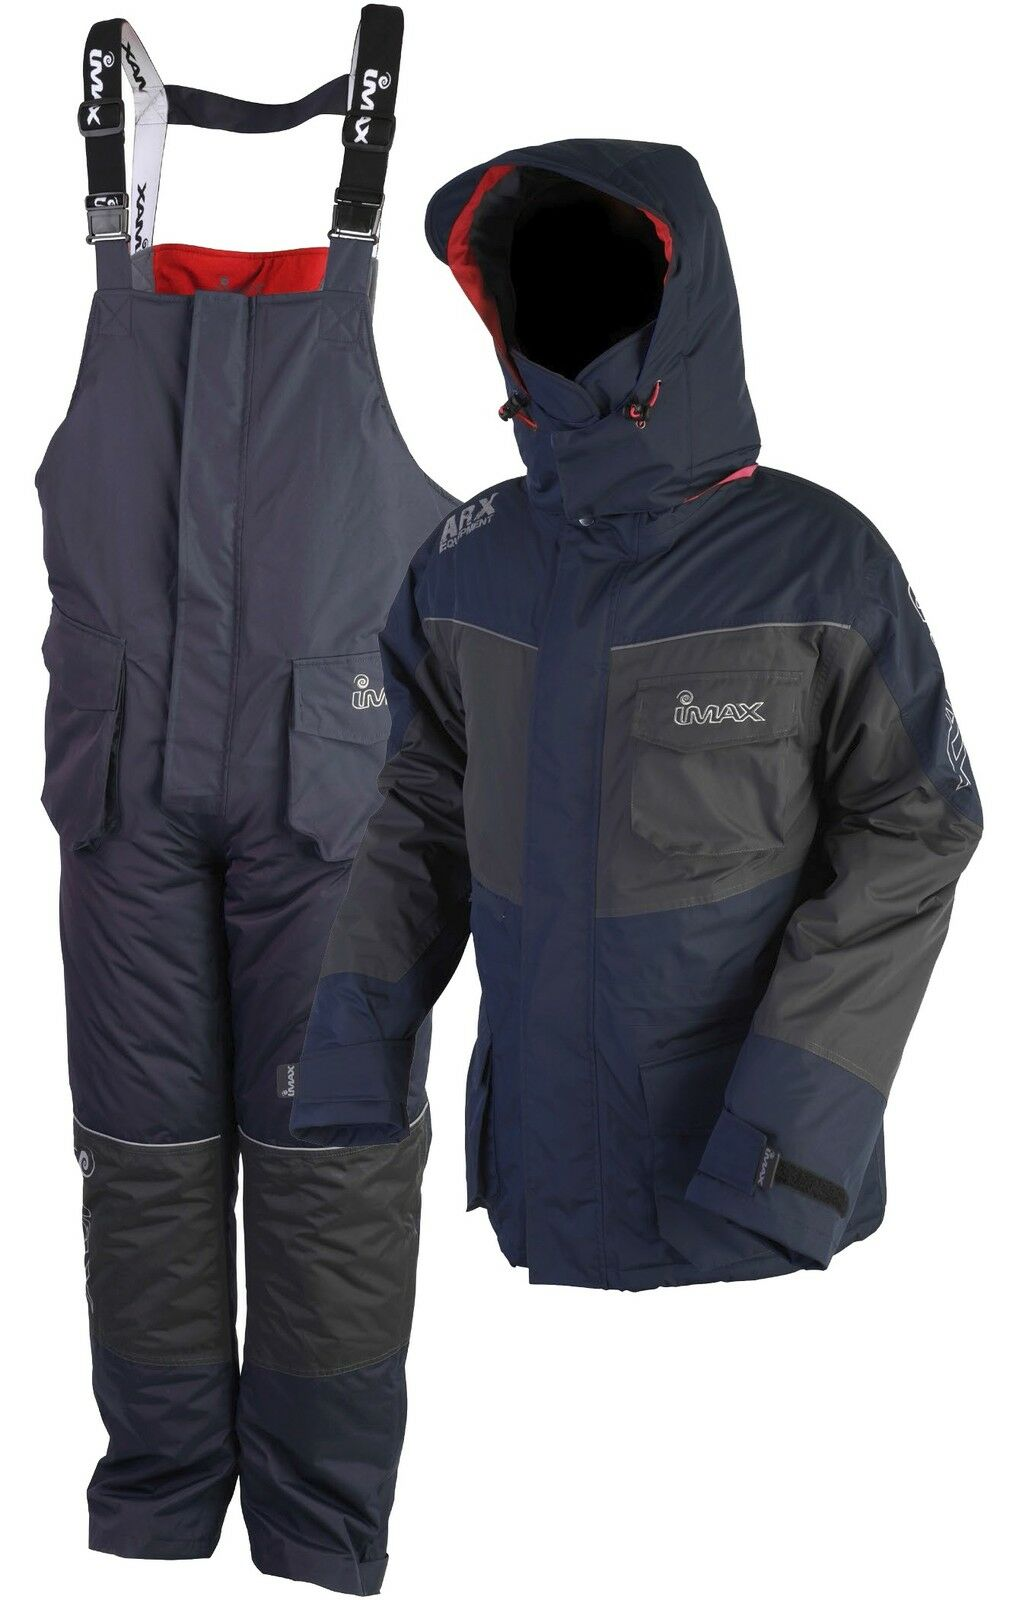 IMAX ARX-20 Ice Thermo Fishing Suit 100% Waterproof- Comfort Zone Down To -20°C